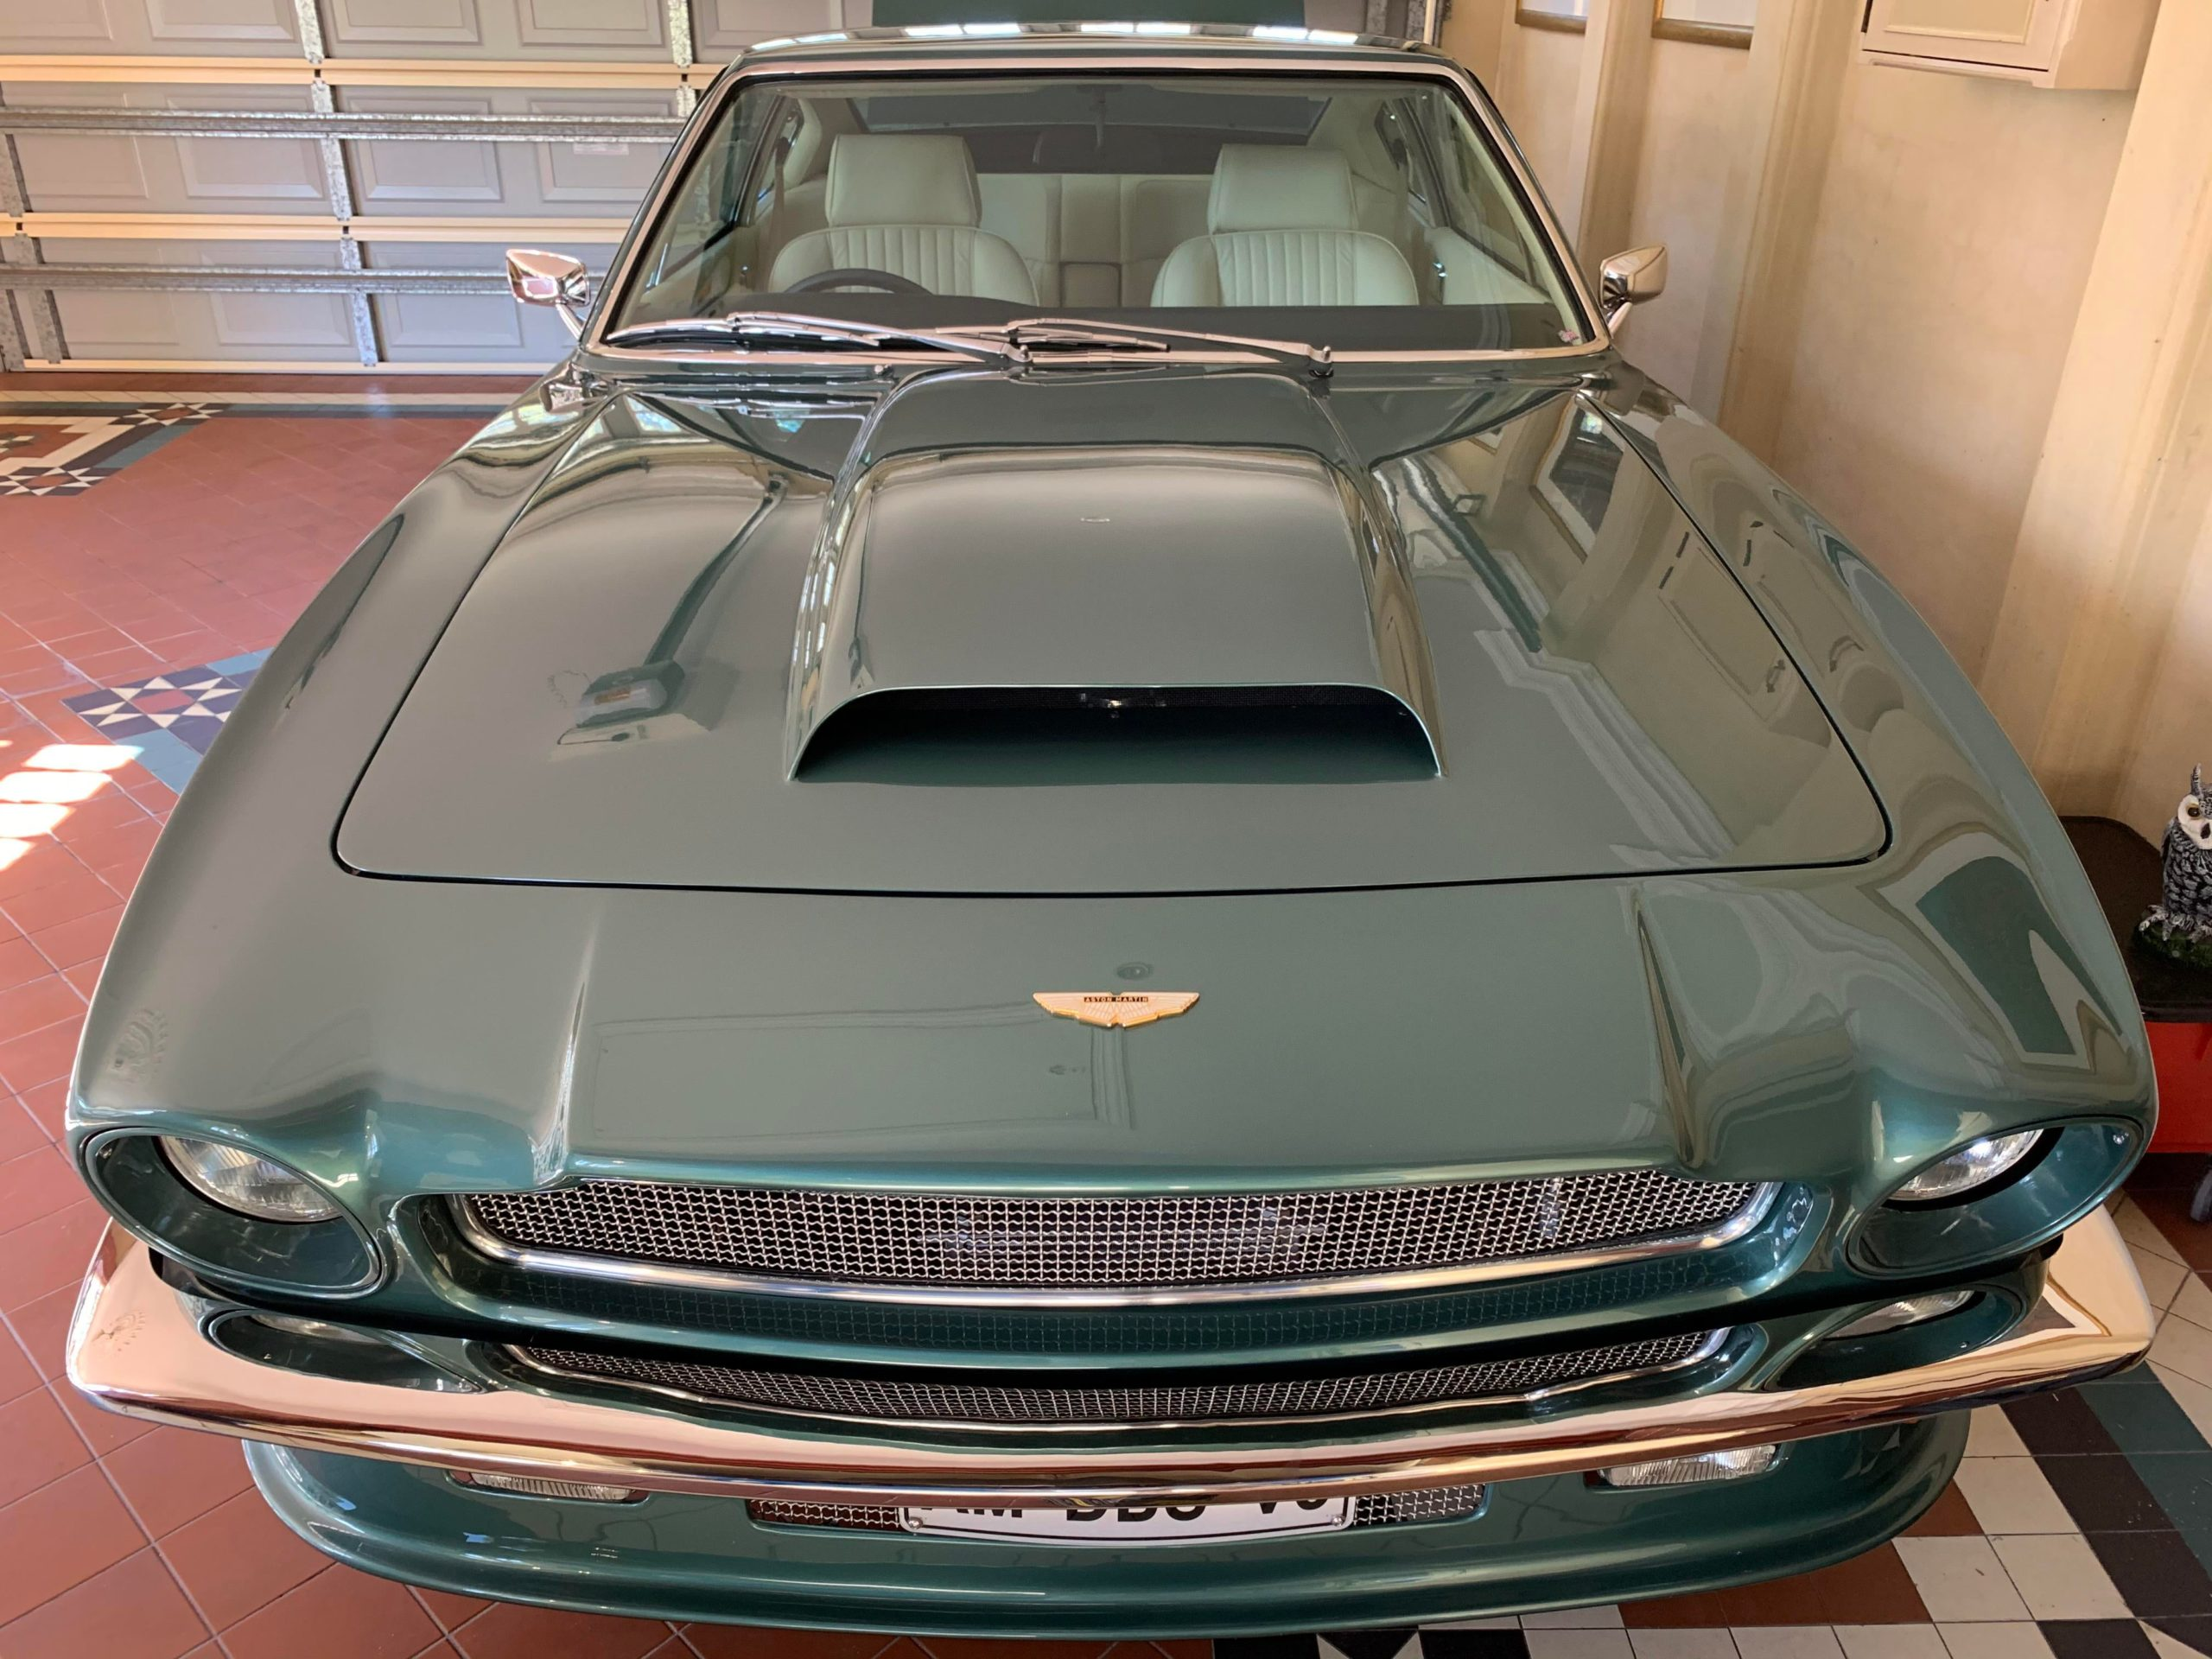 1975 Aston Martin V8……Zymol Concours hand wax…….despite all the modern nano particles this is still my chosen finish – here's why!